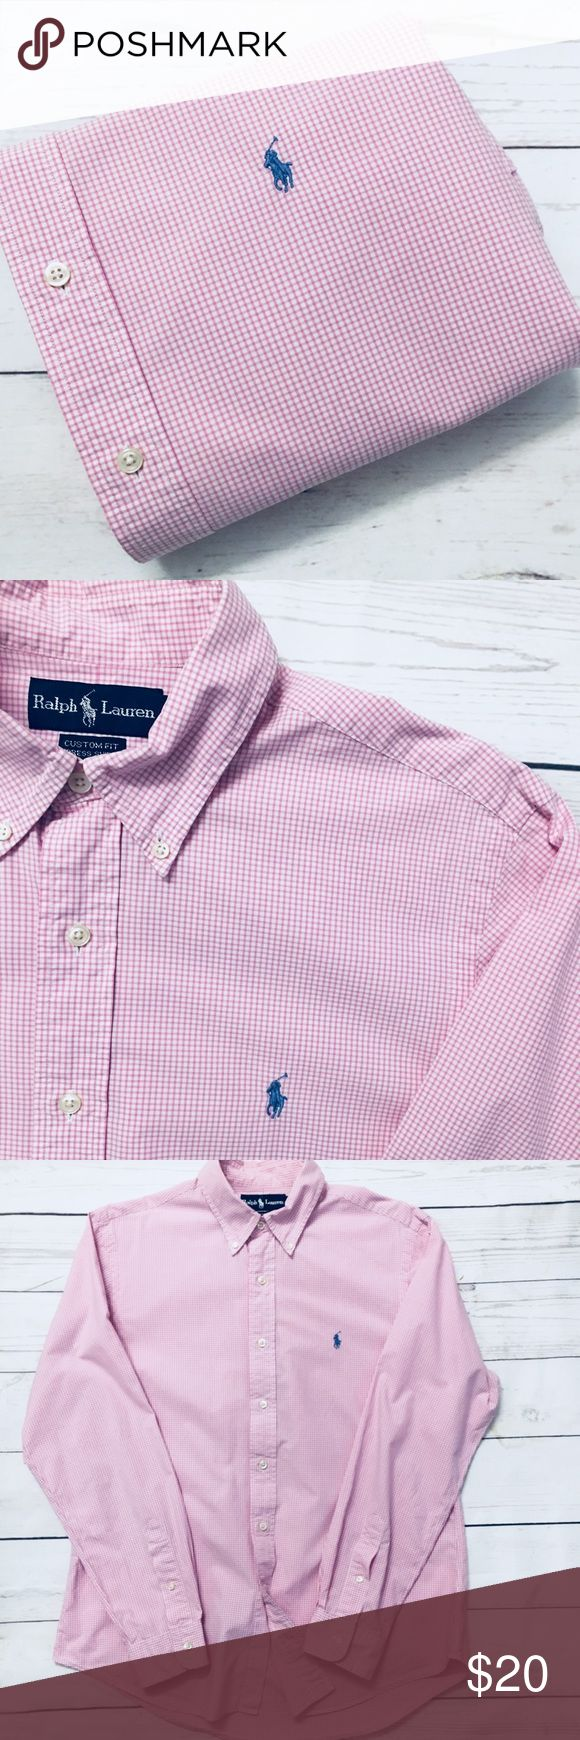 """🐎 🐎SALE 🐎1/$20•2/$35•3/$50•🐎POLO• RALPH• LAUREN•  🇺🇸Military, police & fire men & women receive 10% discount🇺🇸  men's  long sleeve 100% cotton oxford shirt• 16/ 40-41 CUSTOM FIT per tag, see measurements below•  Signature pony•  GUC•   shoulder: 18.5"""" Chest: 24"""" (armpit-armpit) Sleeve: 34"""" Length: 31""""  🐎CHECK BACK EACH WEEK FOR NEW POLO LISTINGS🐎 Polo by Ralph Lauren Shirts Casual Button Down Shirts"""